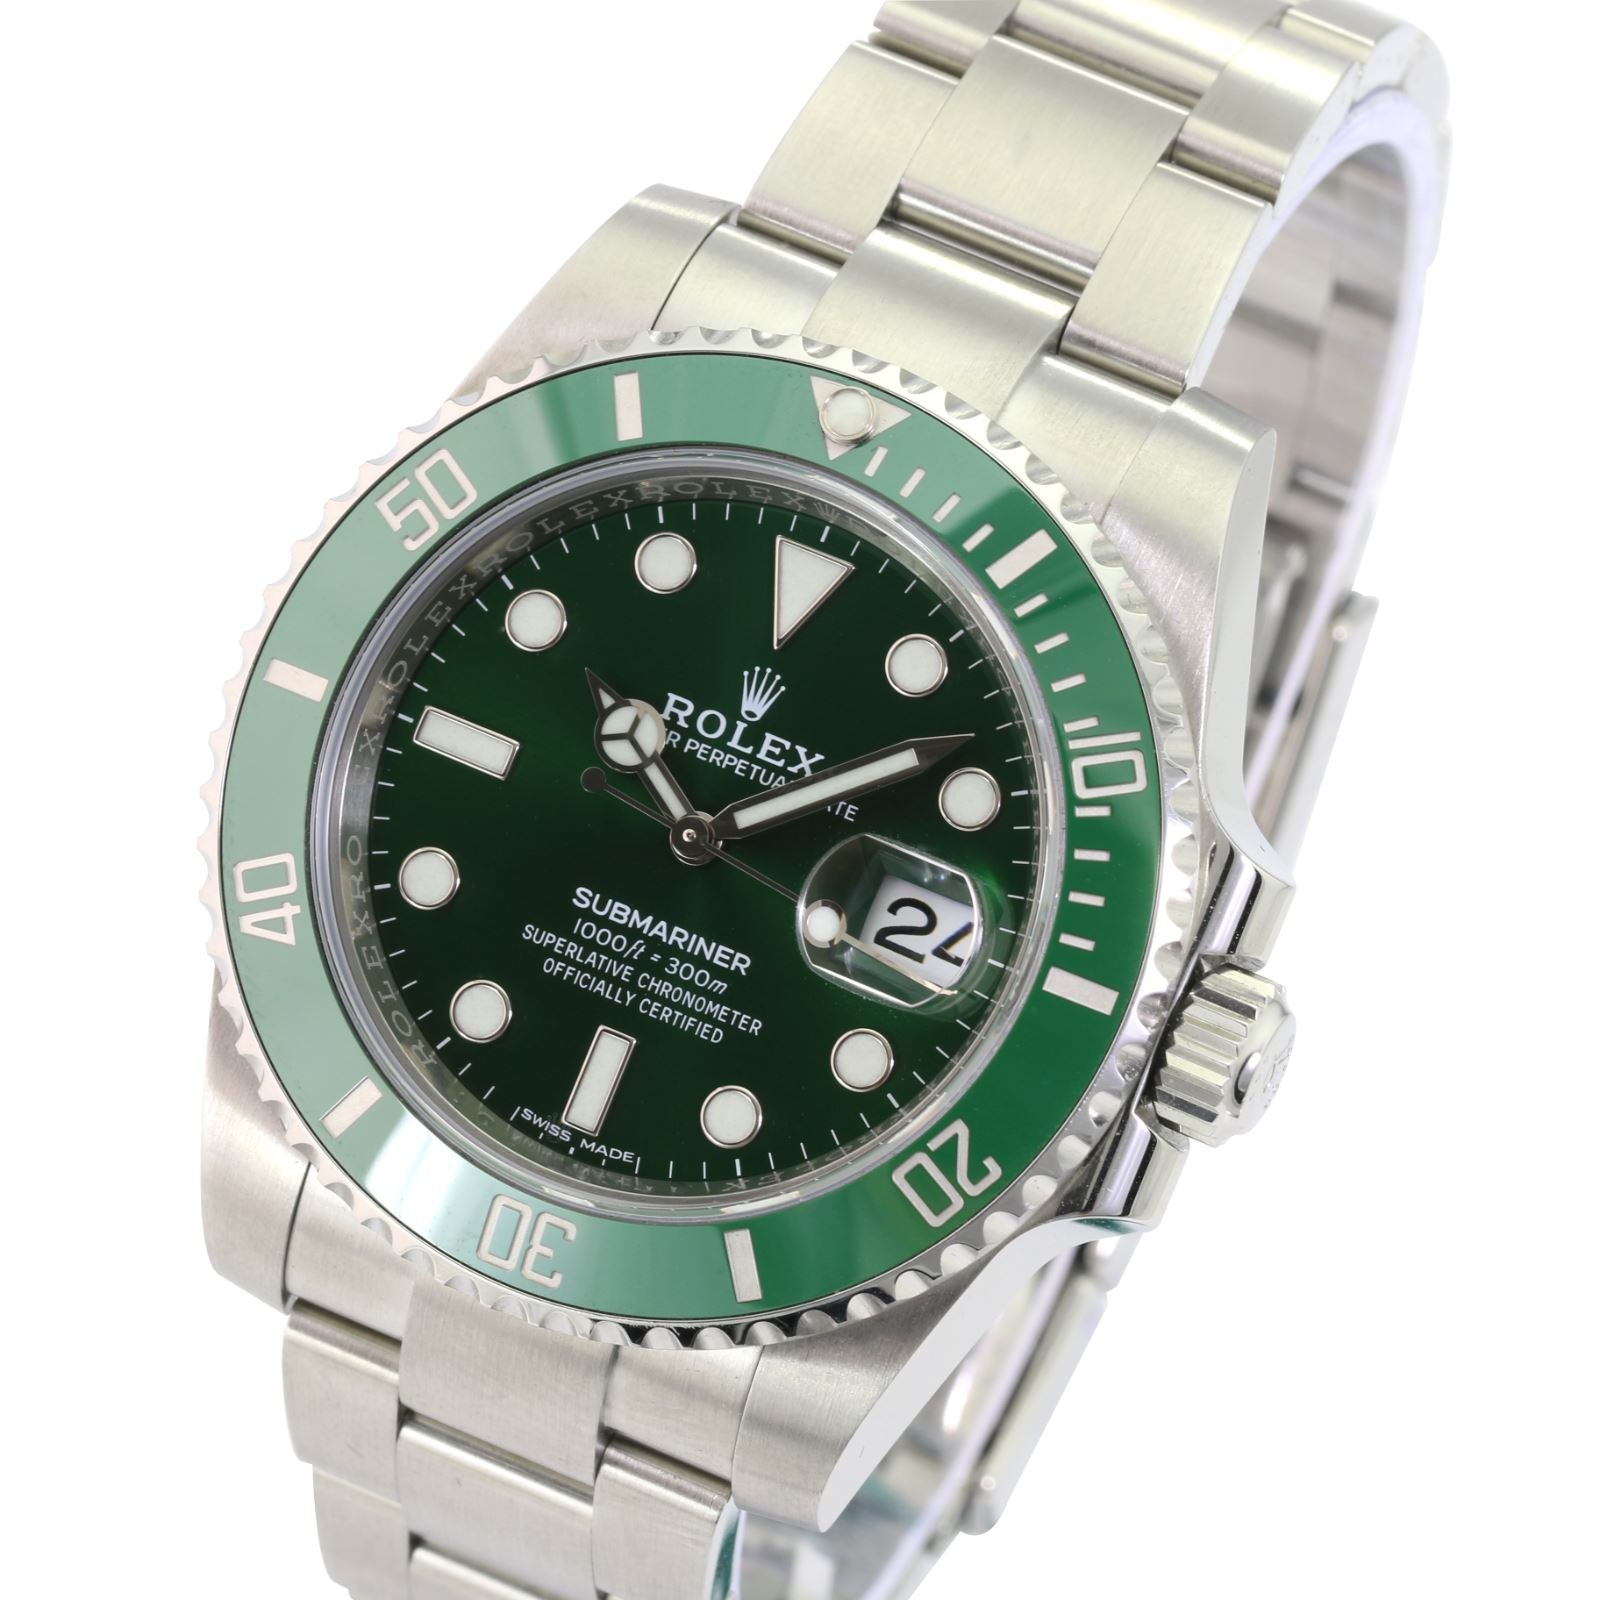 Rolex Submariner 116610V 'Hulk' Steel Ceramic Green on Green Automatic-UNWORN - Time Keepers Vault